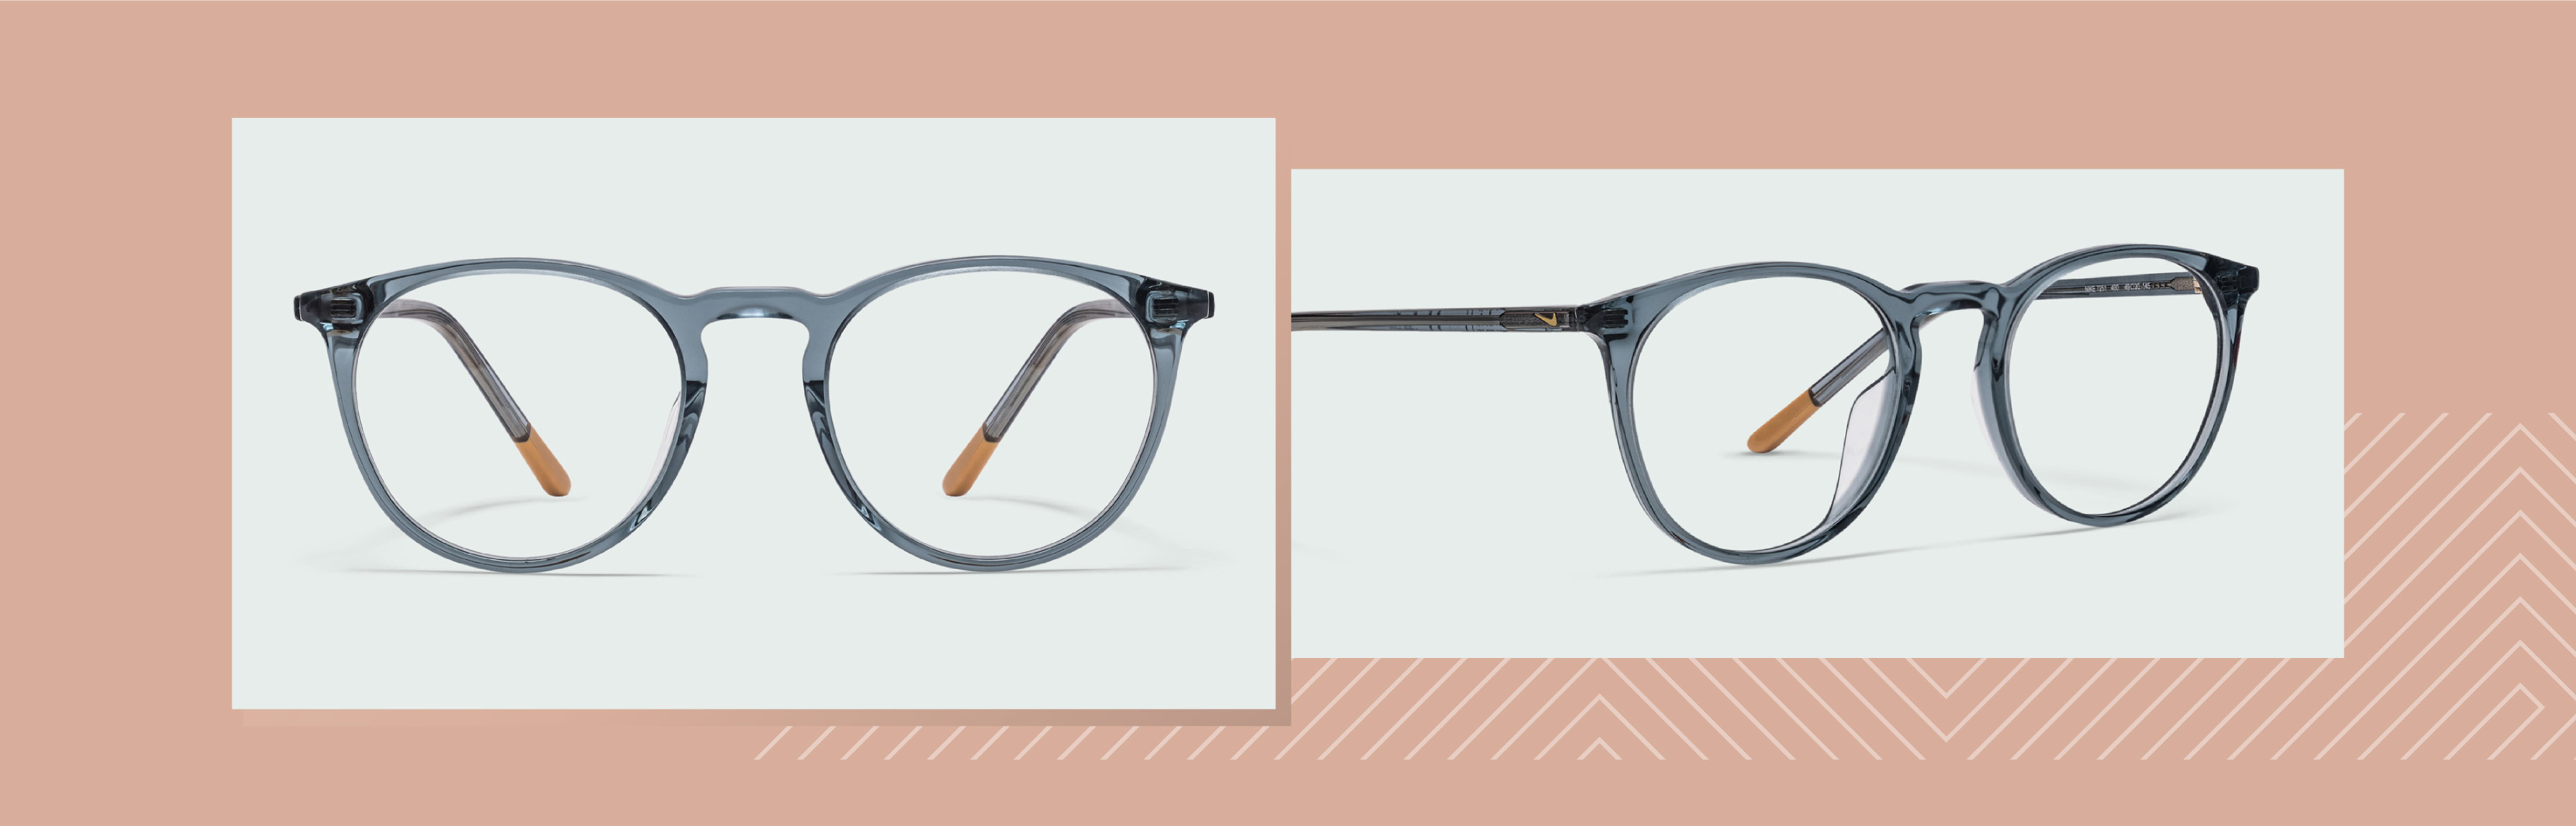 Model of transparent glasses that will lighten your face